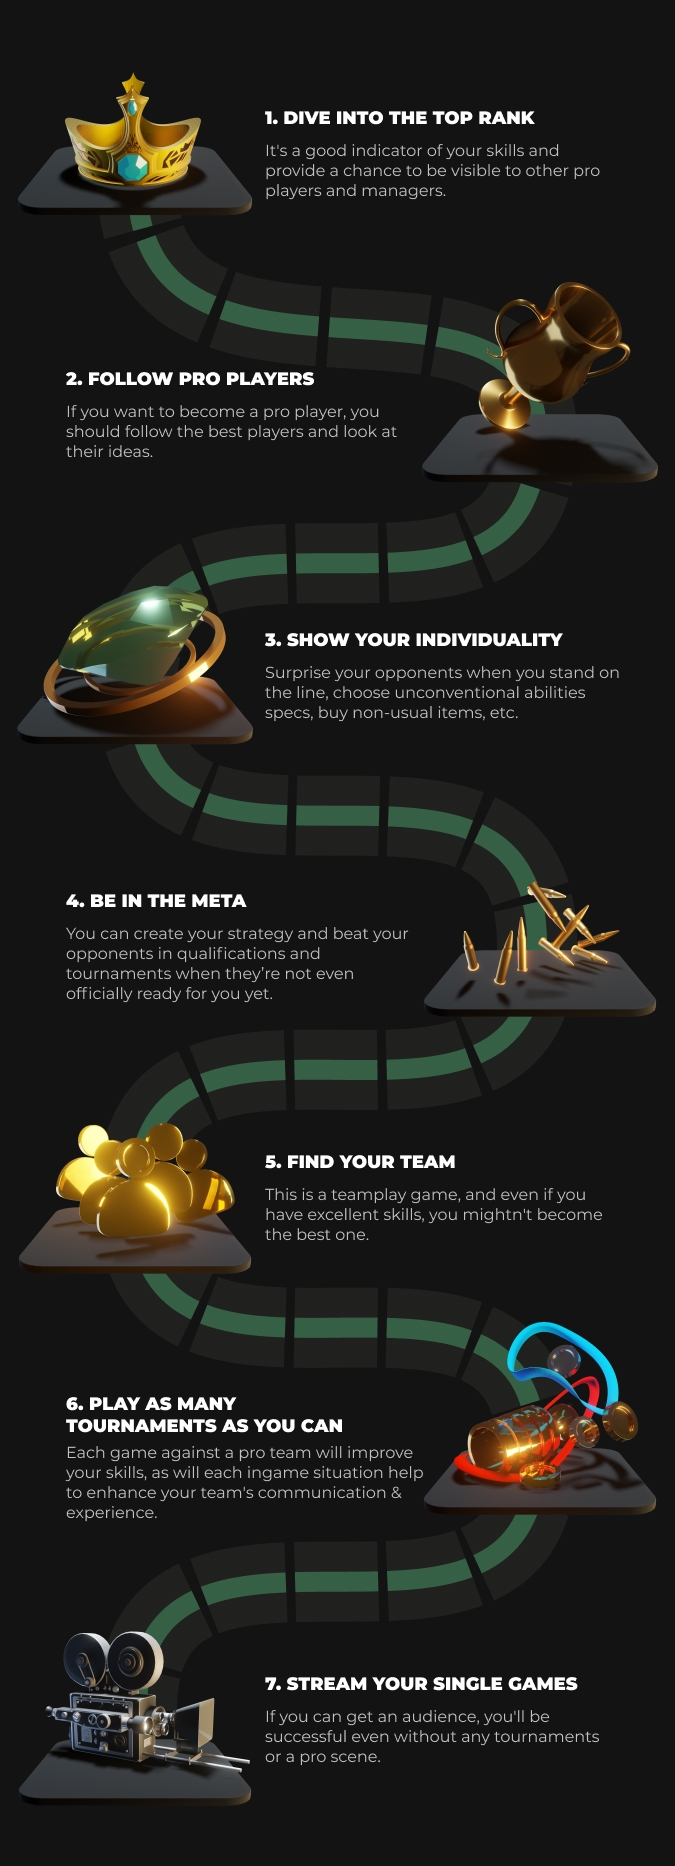 How to Start Your Dota 2 Pro Career